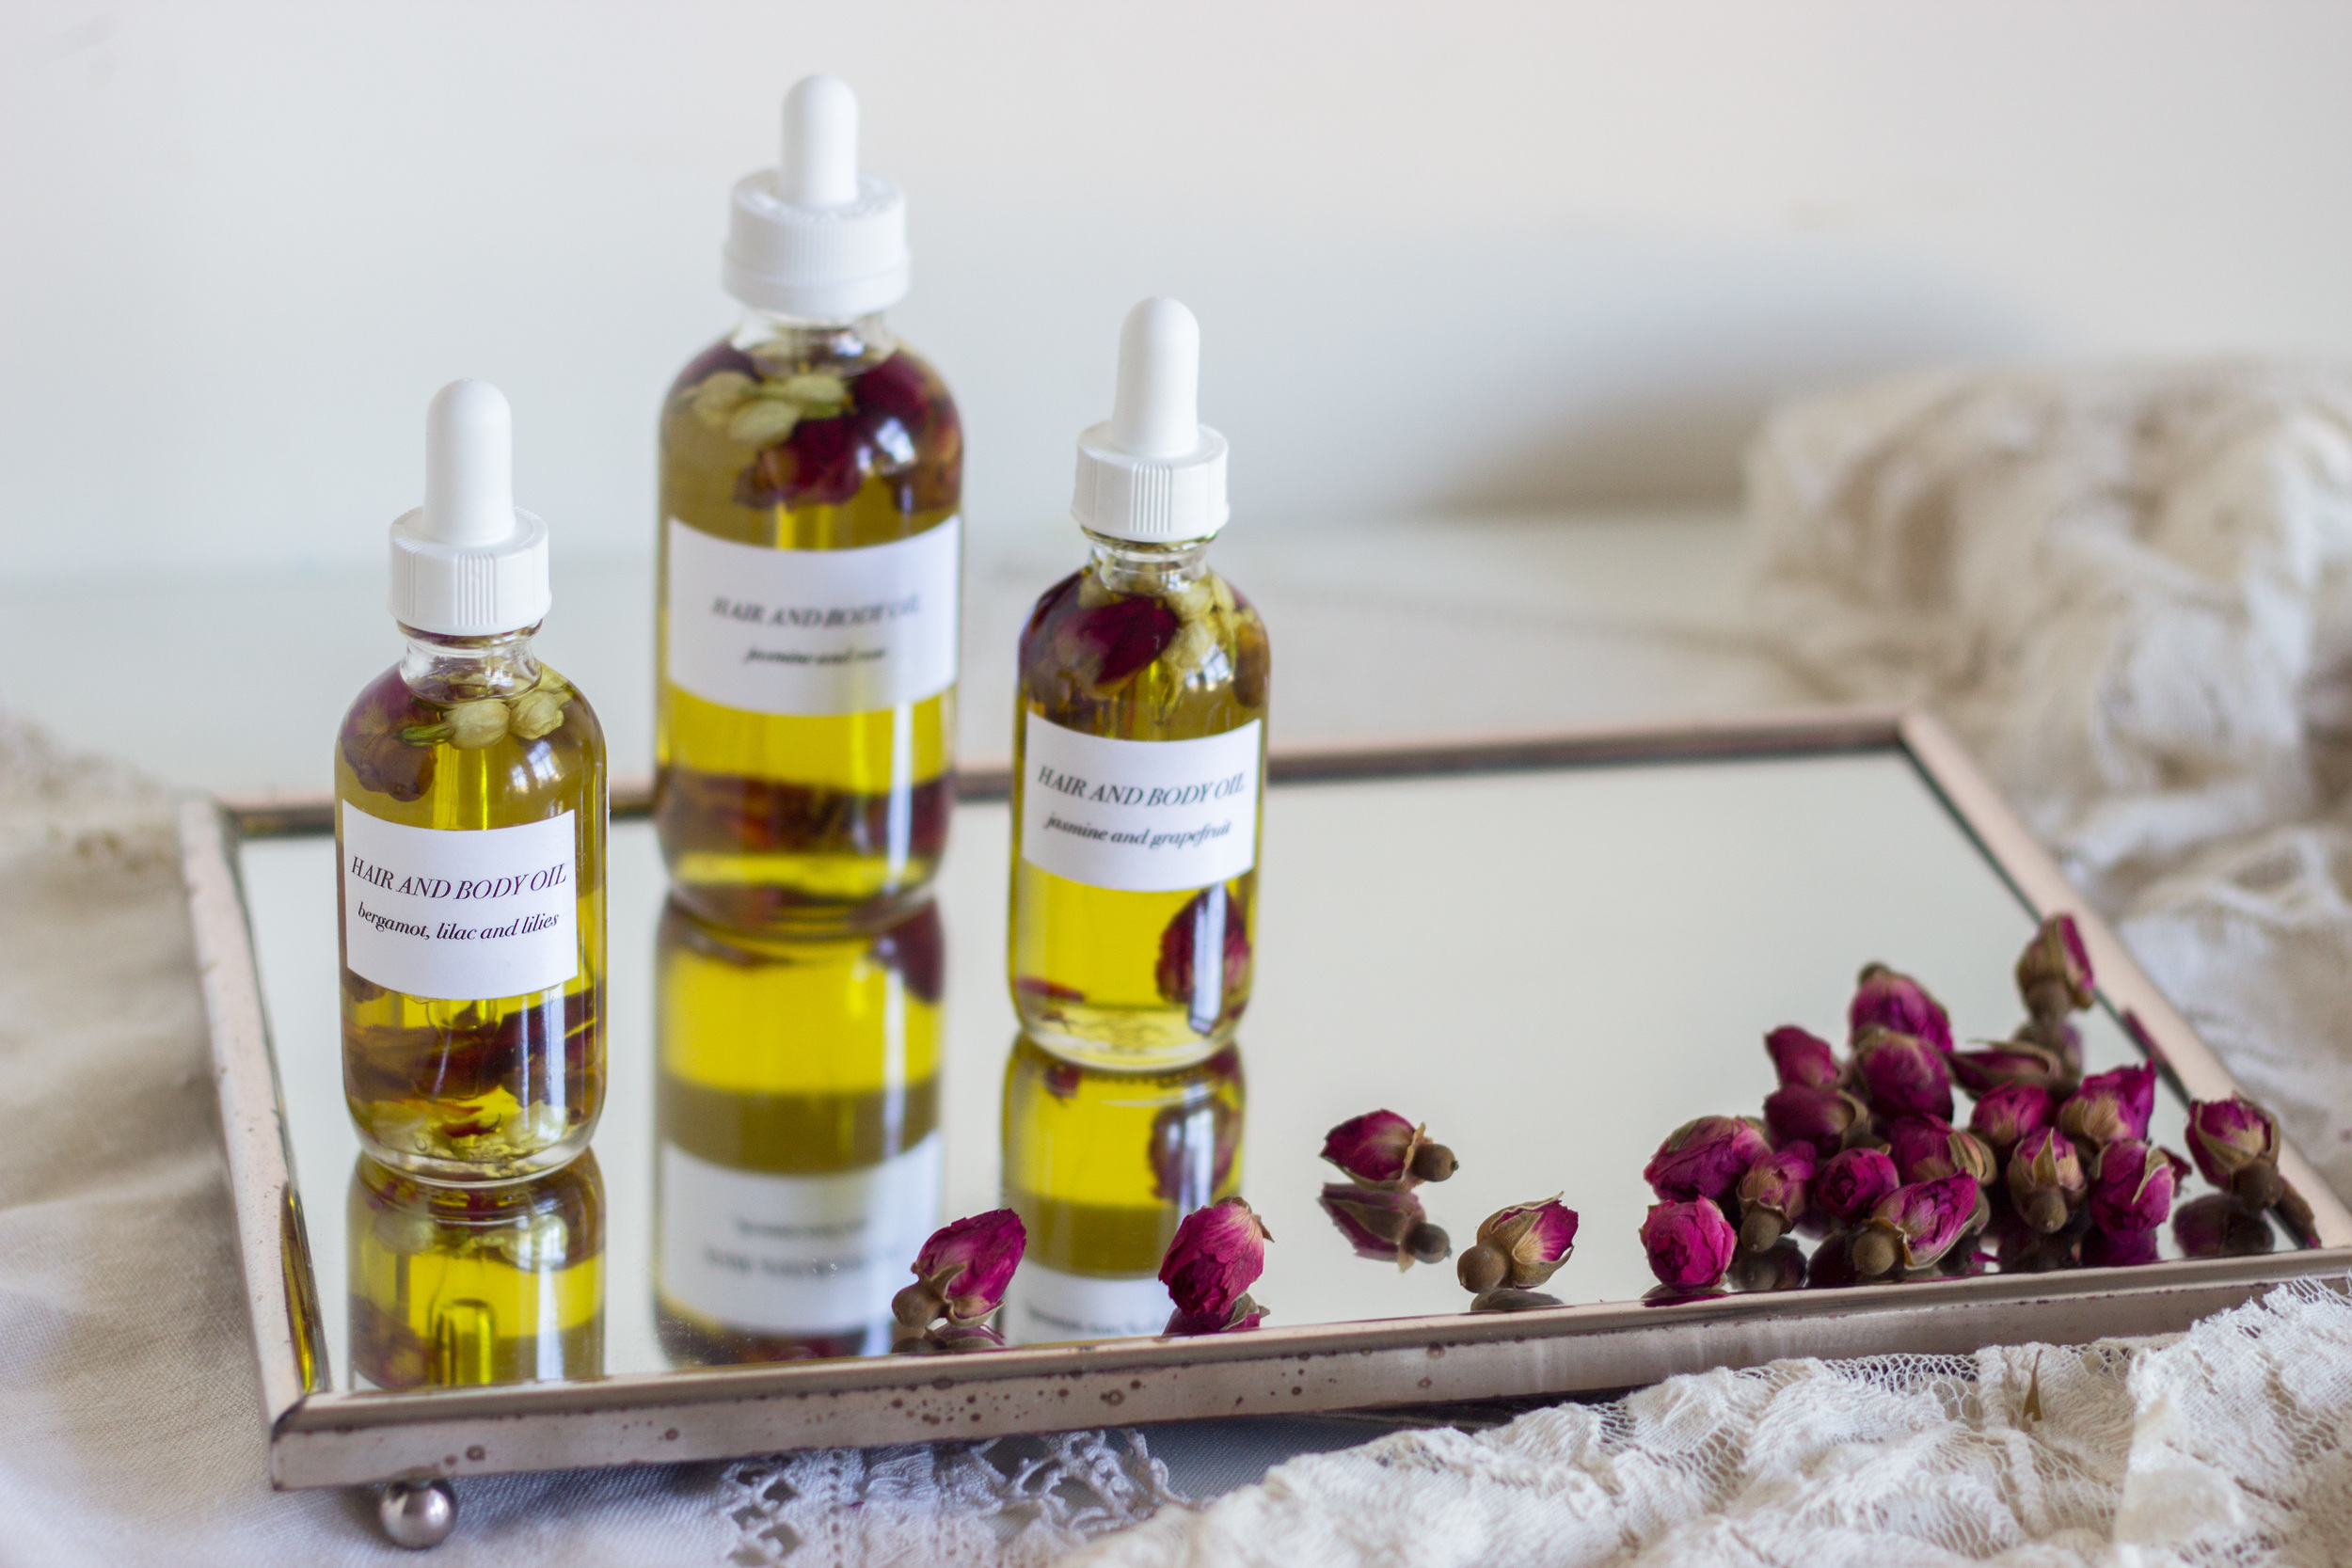 DIY: Floral Hair and Body Oil (www.withmichellekim.com)